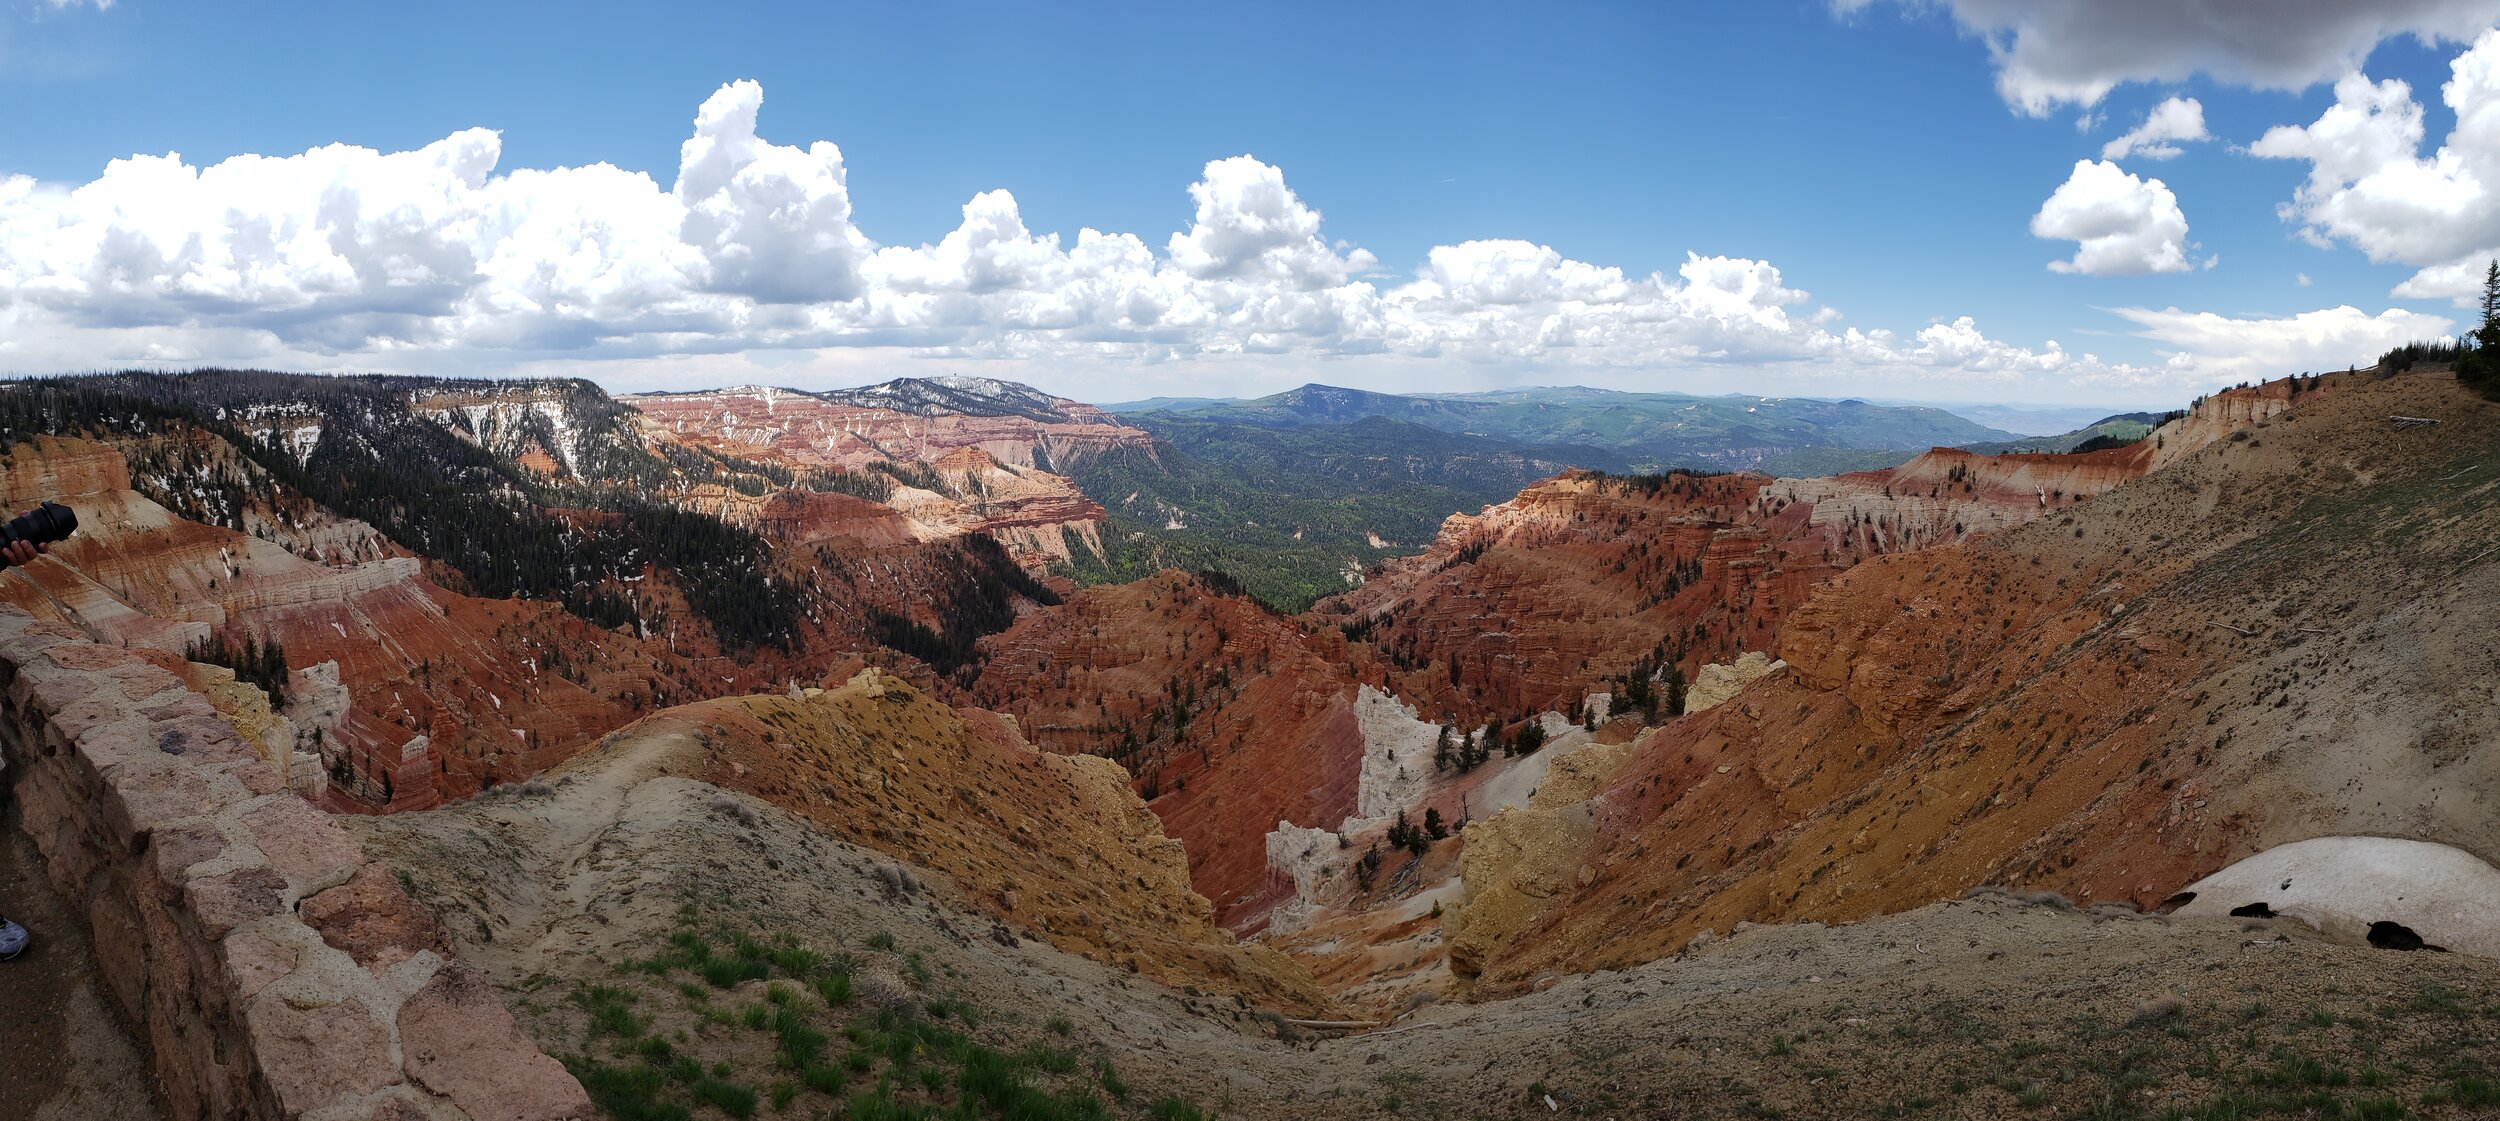 A magnificant view from Cedar Breaks National Monument, just 10km from the location of our June CoW.